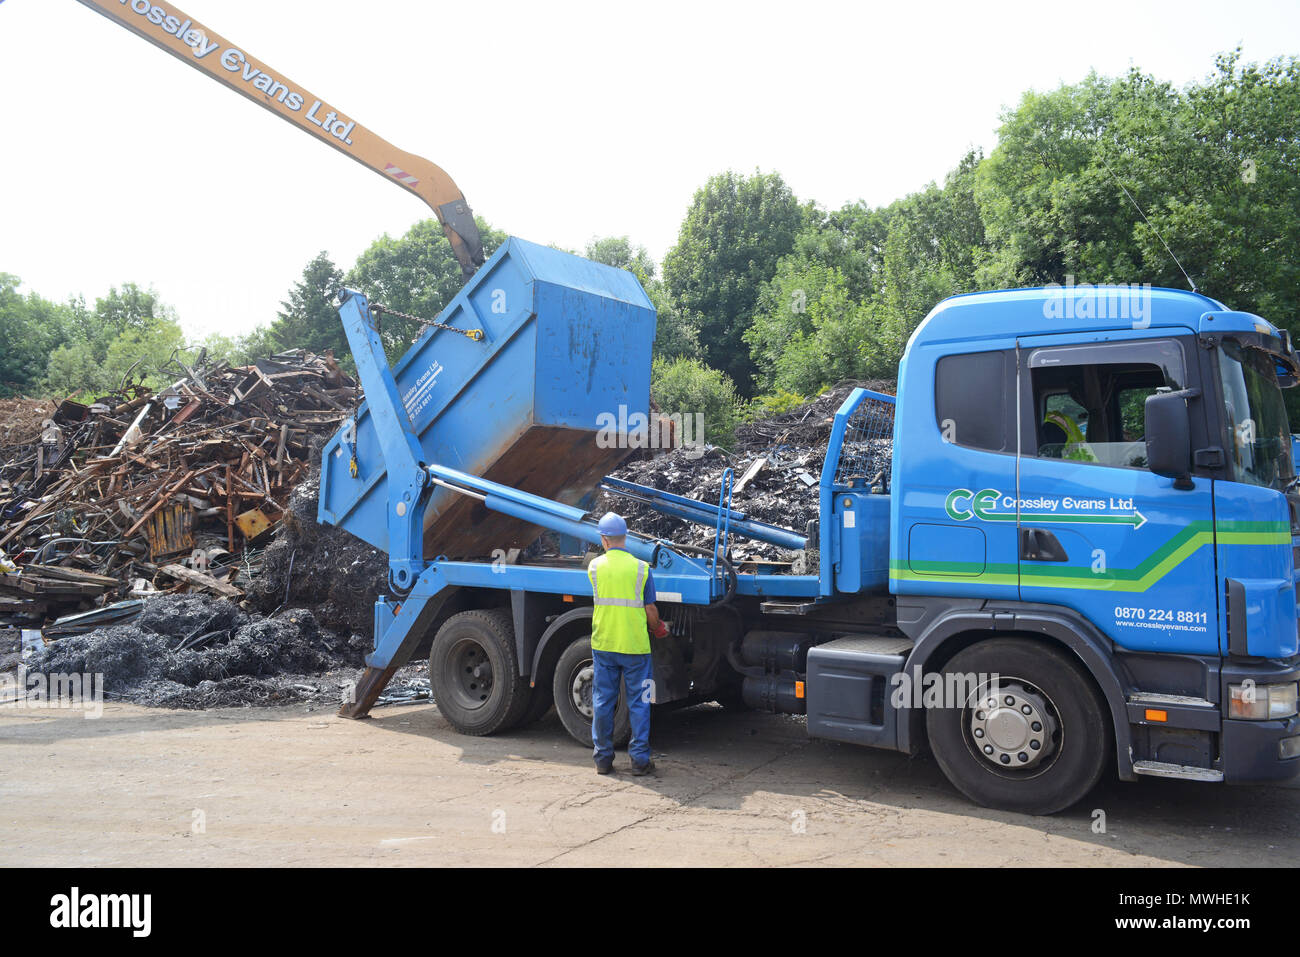 lorry driver tipping load of scrapyard leeds yorkshire united kingdom - Stock Image